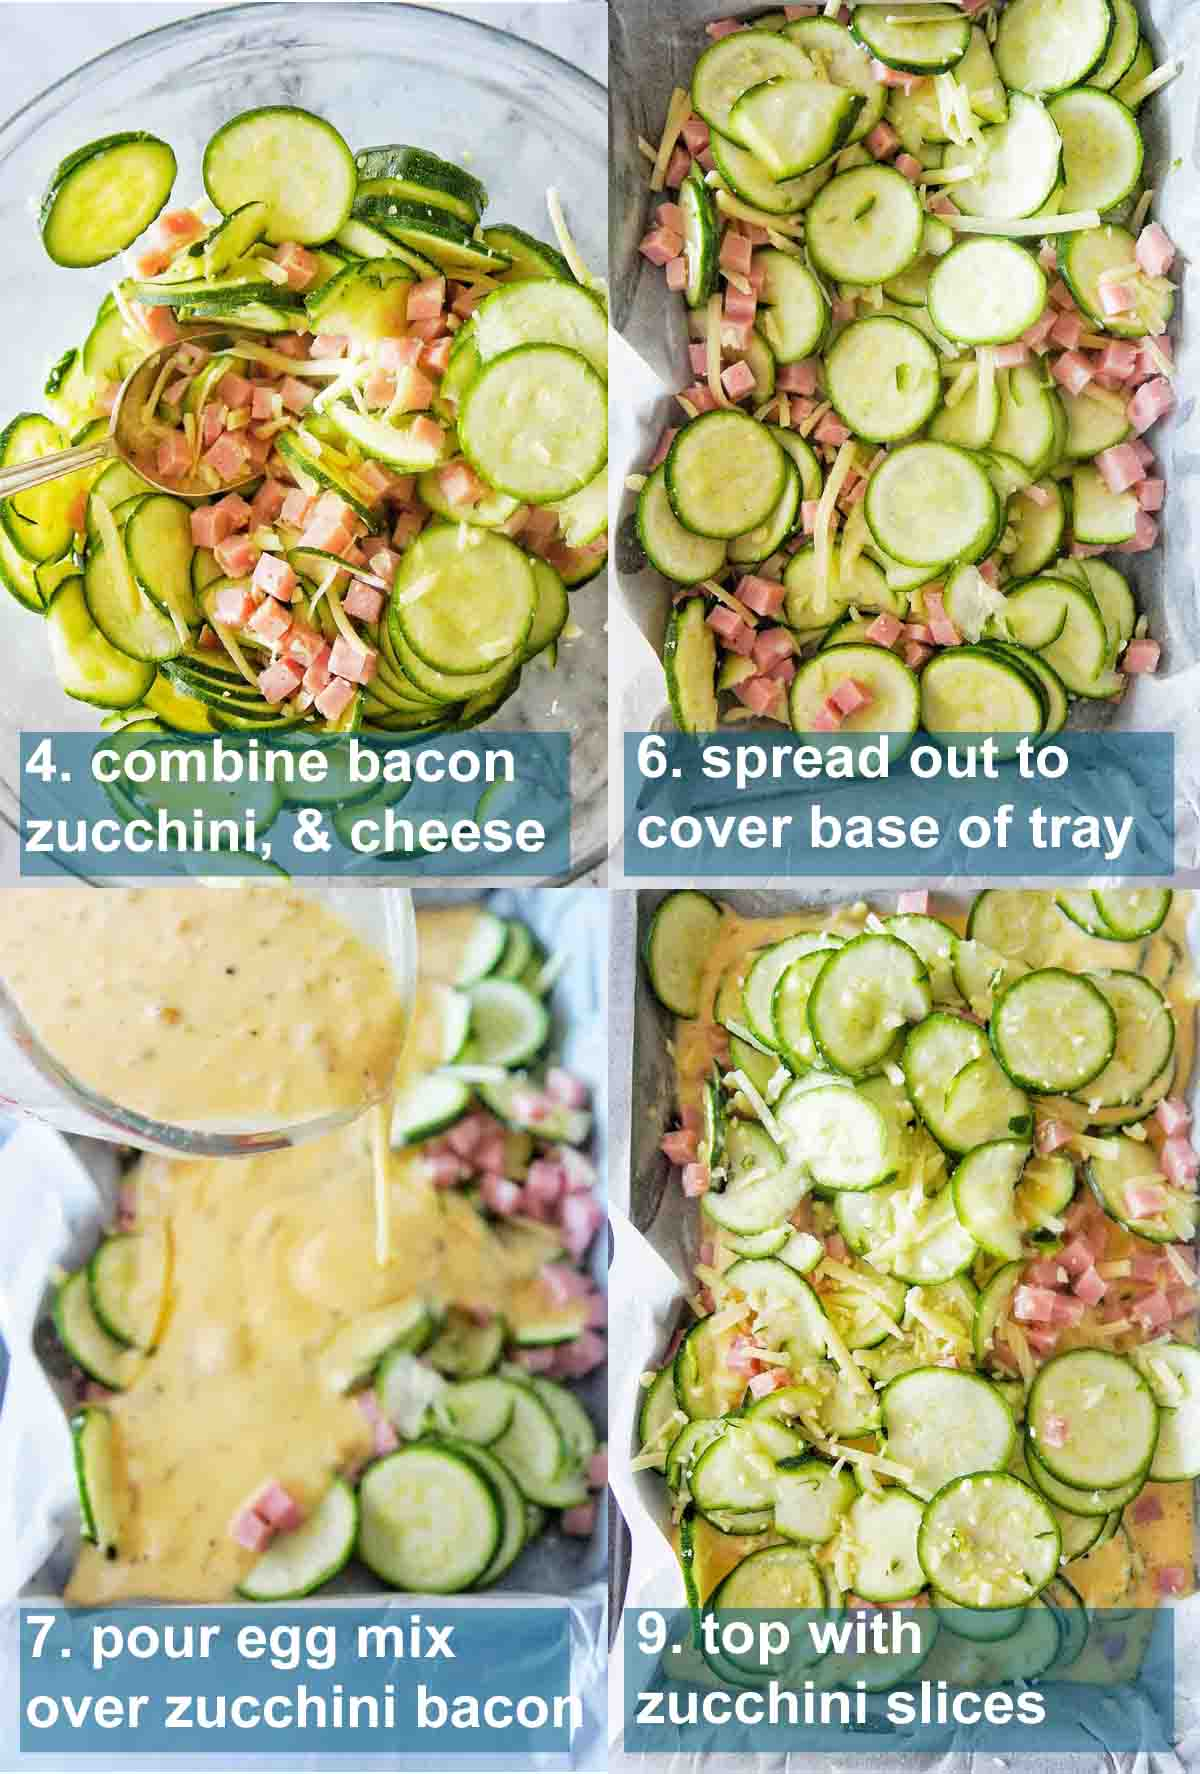 Zucchini and Bacon slice key steps with text overlay